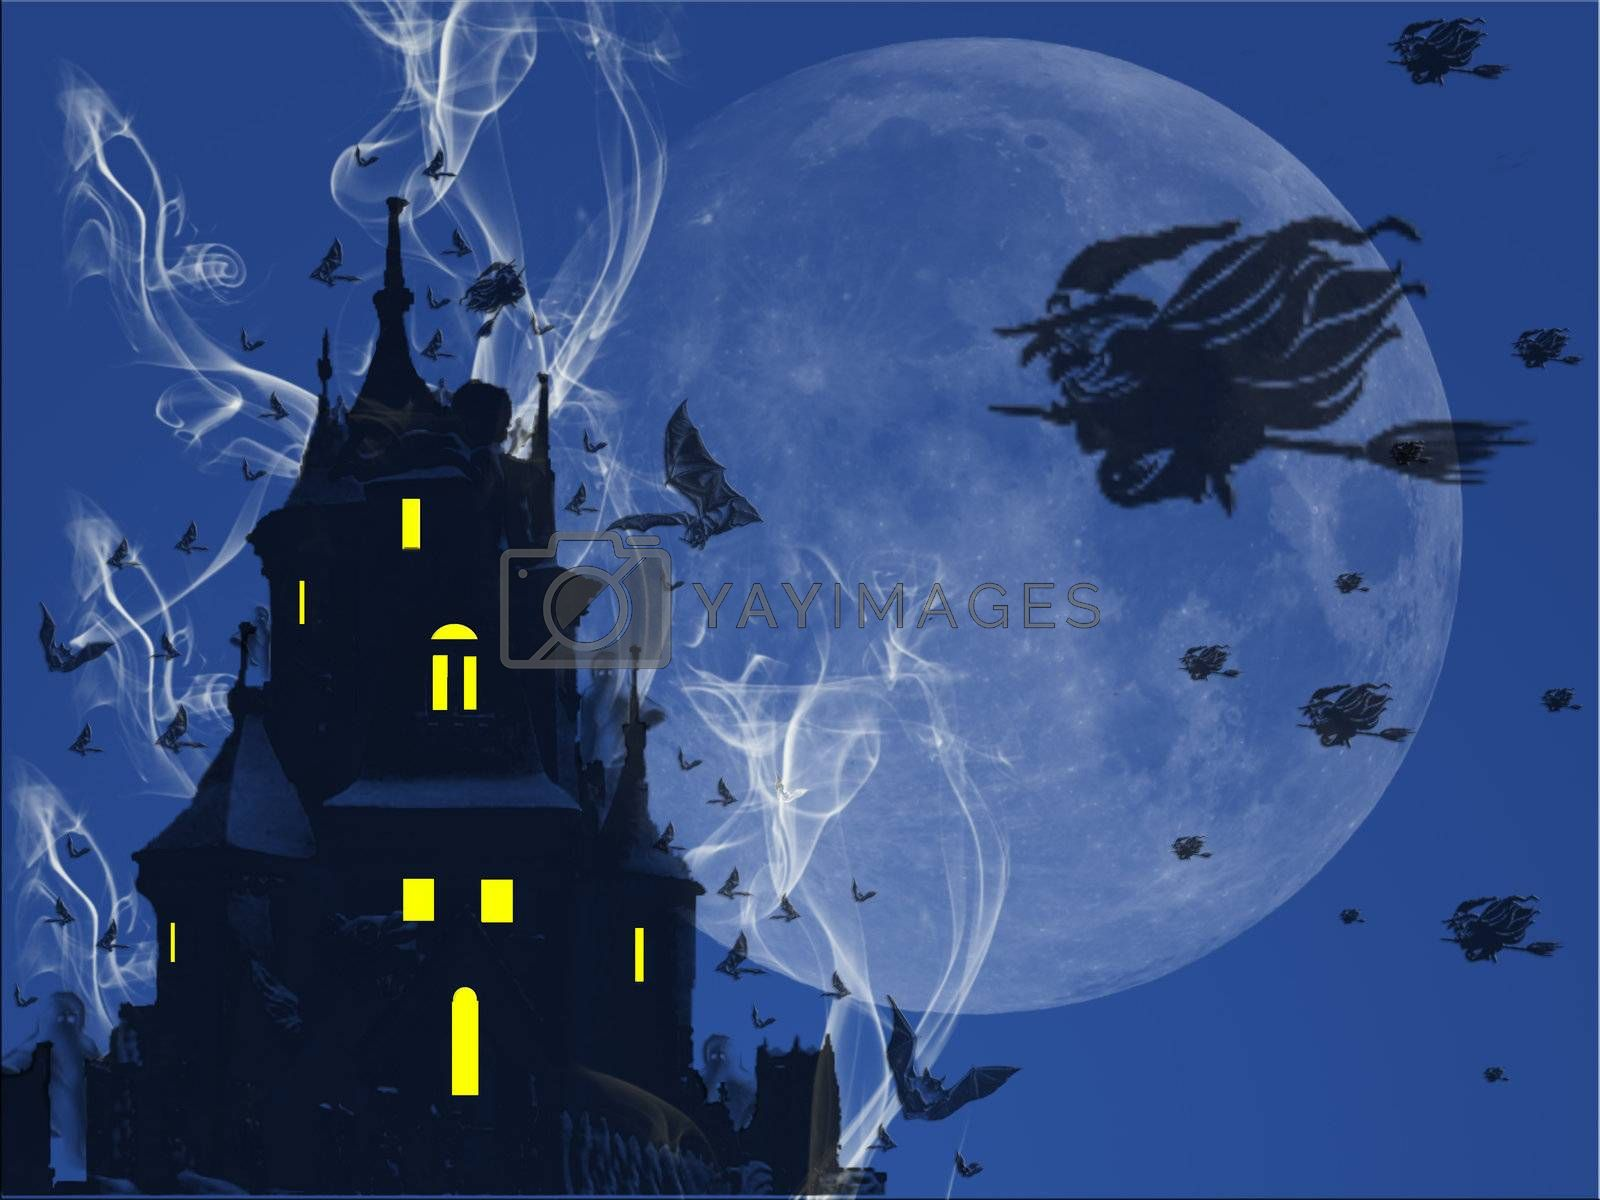 Castle ghosts, witches and bats